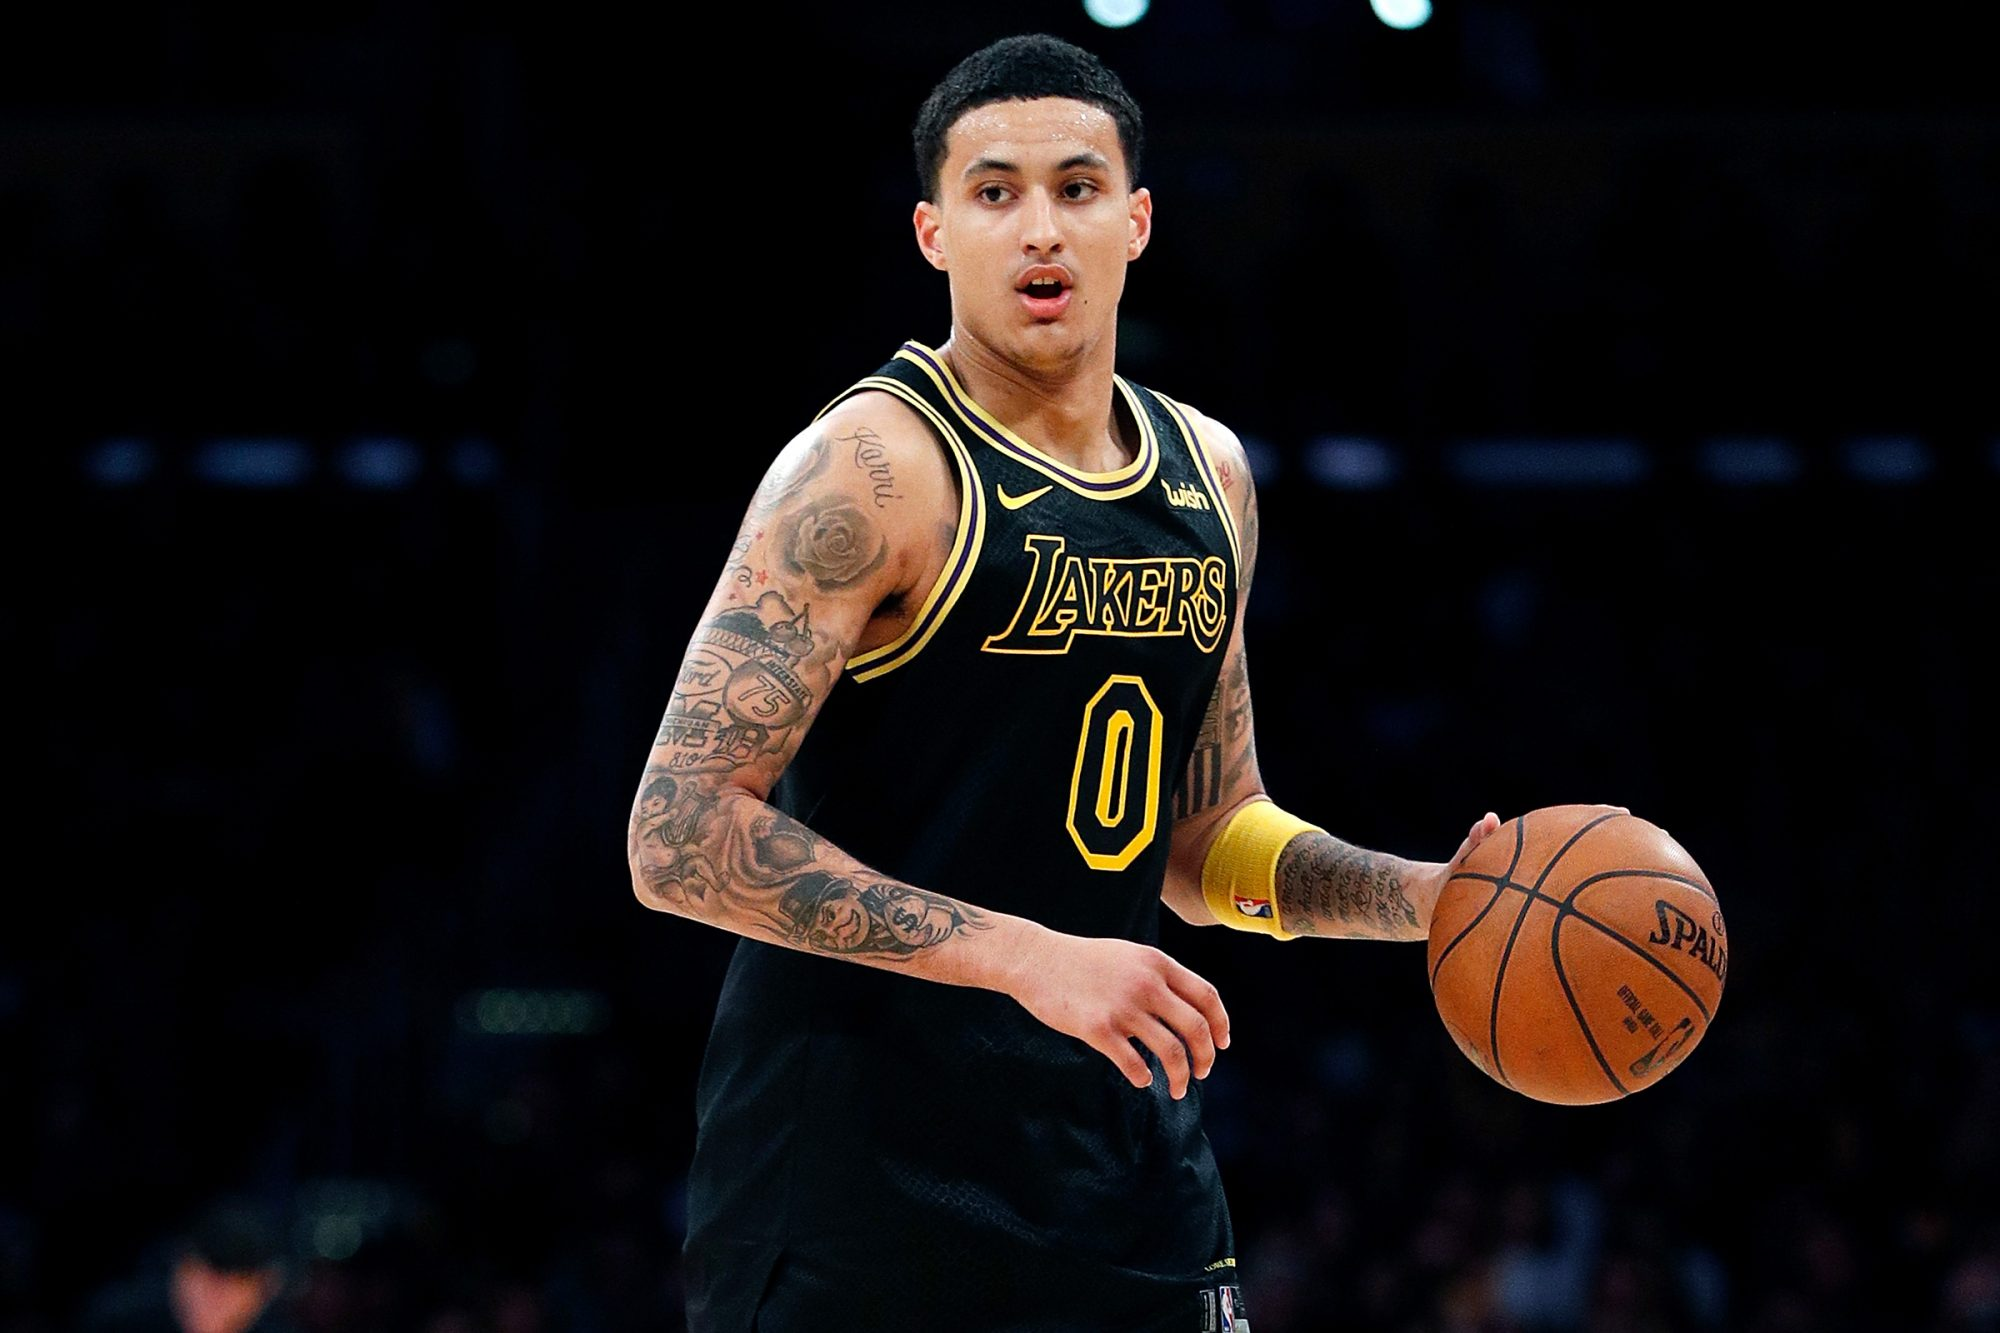 Los Angeles Lakers Black Mamba Jersey Kyle Kuzma